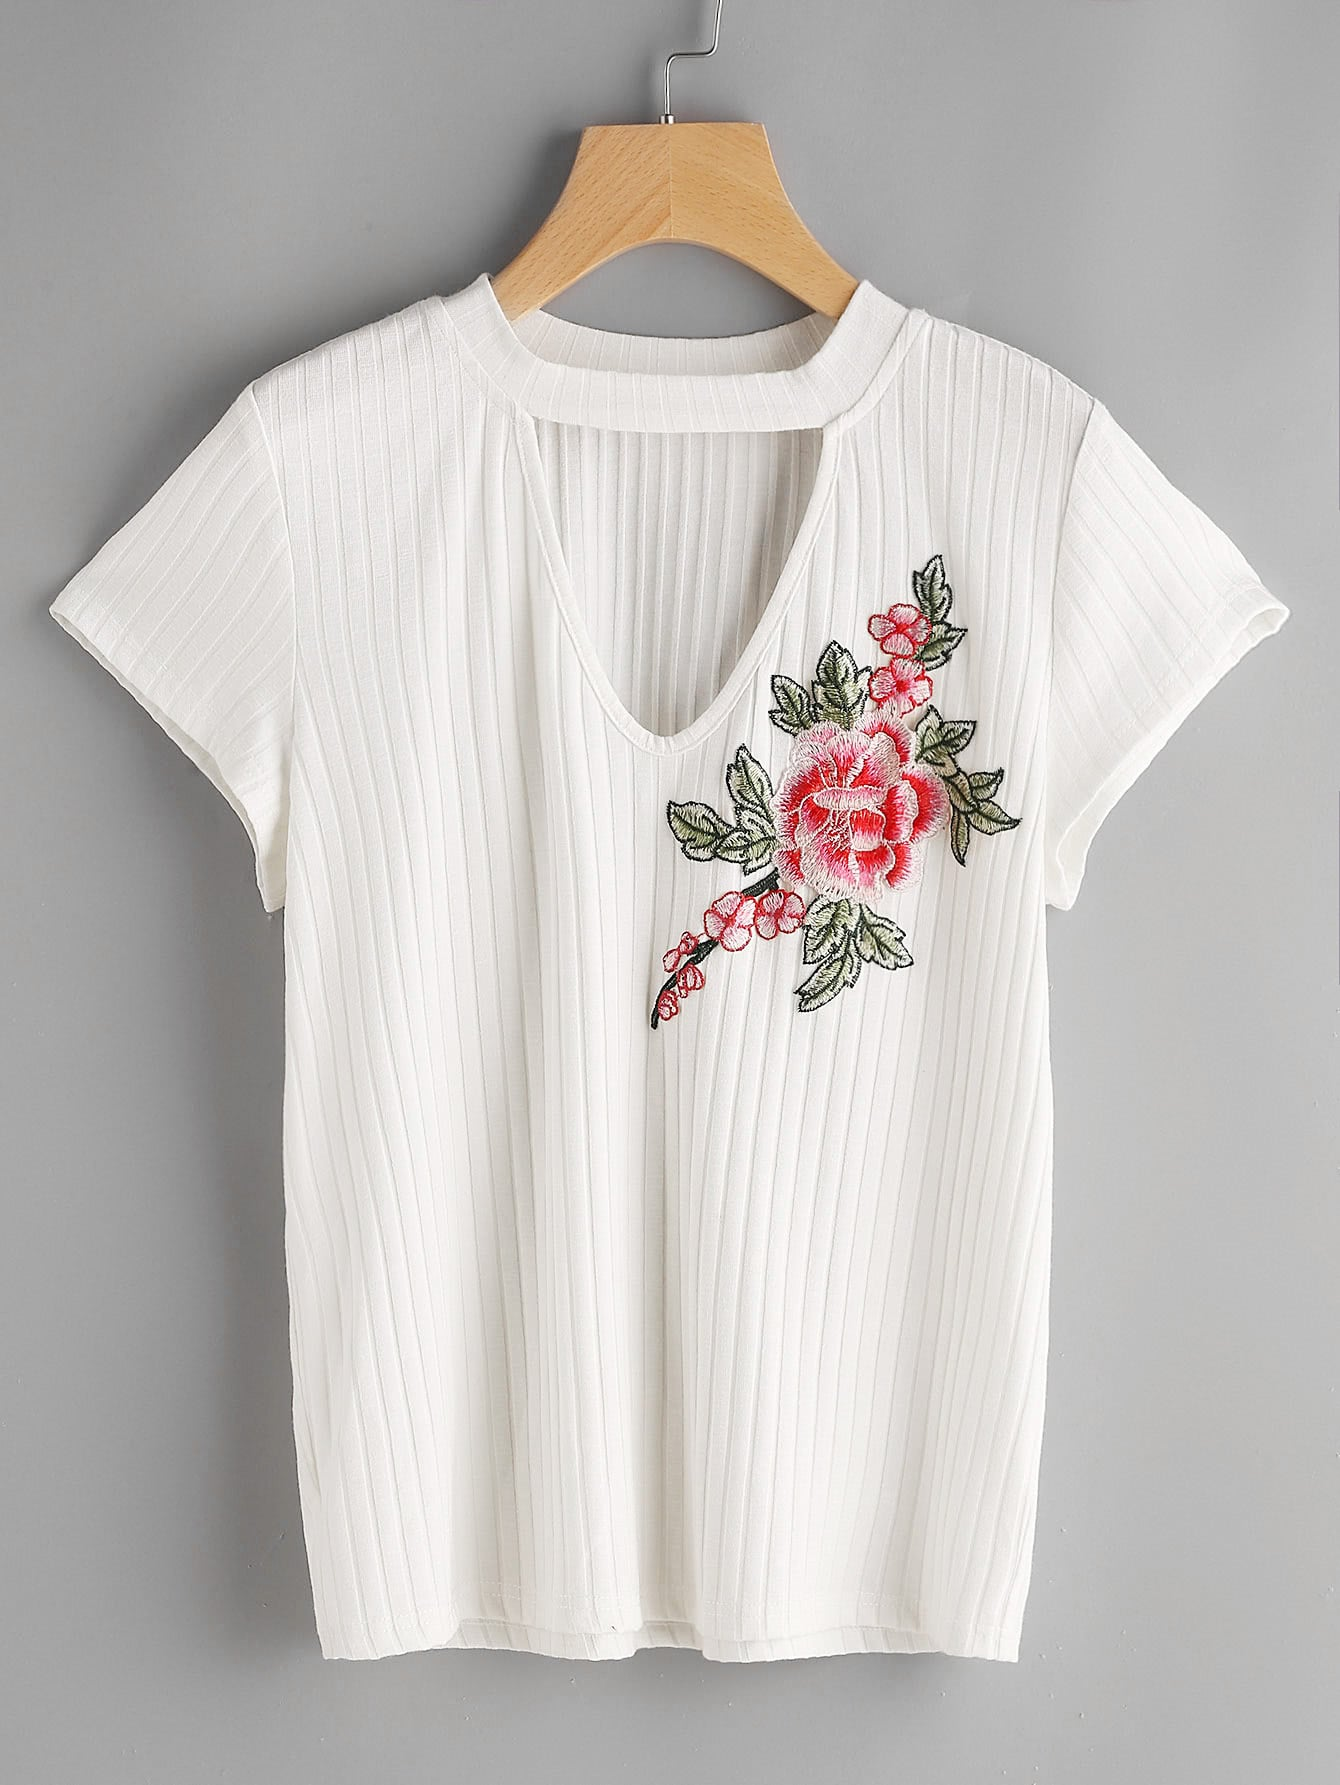 Rib Knit Flower Applique Choker Neck Tee